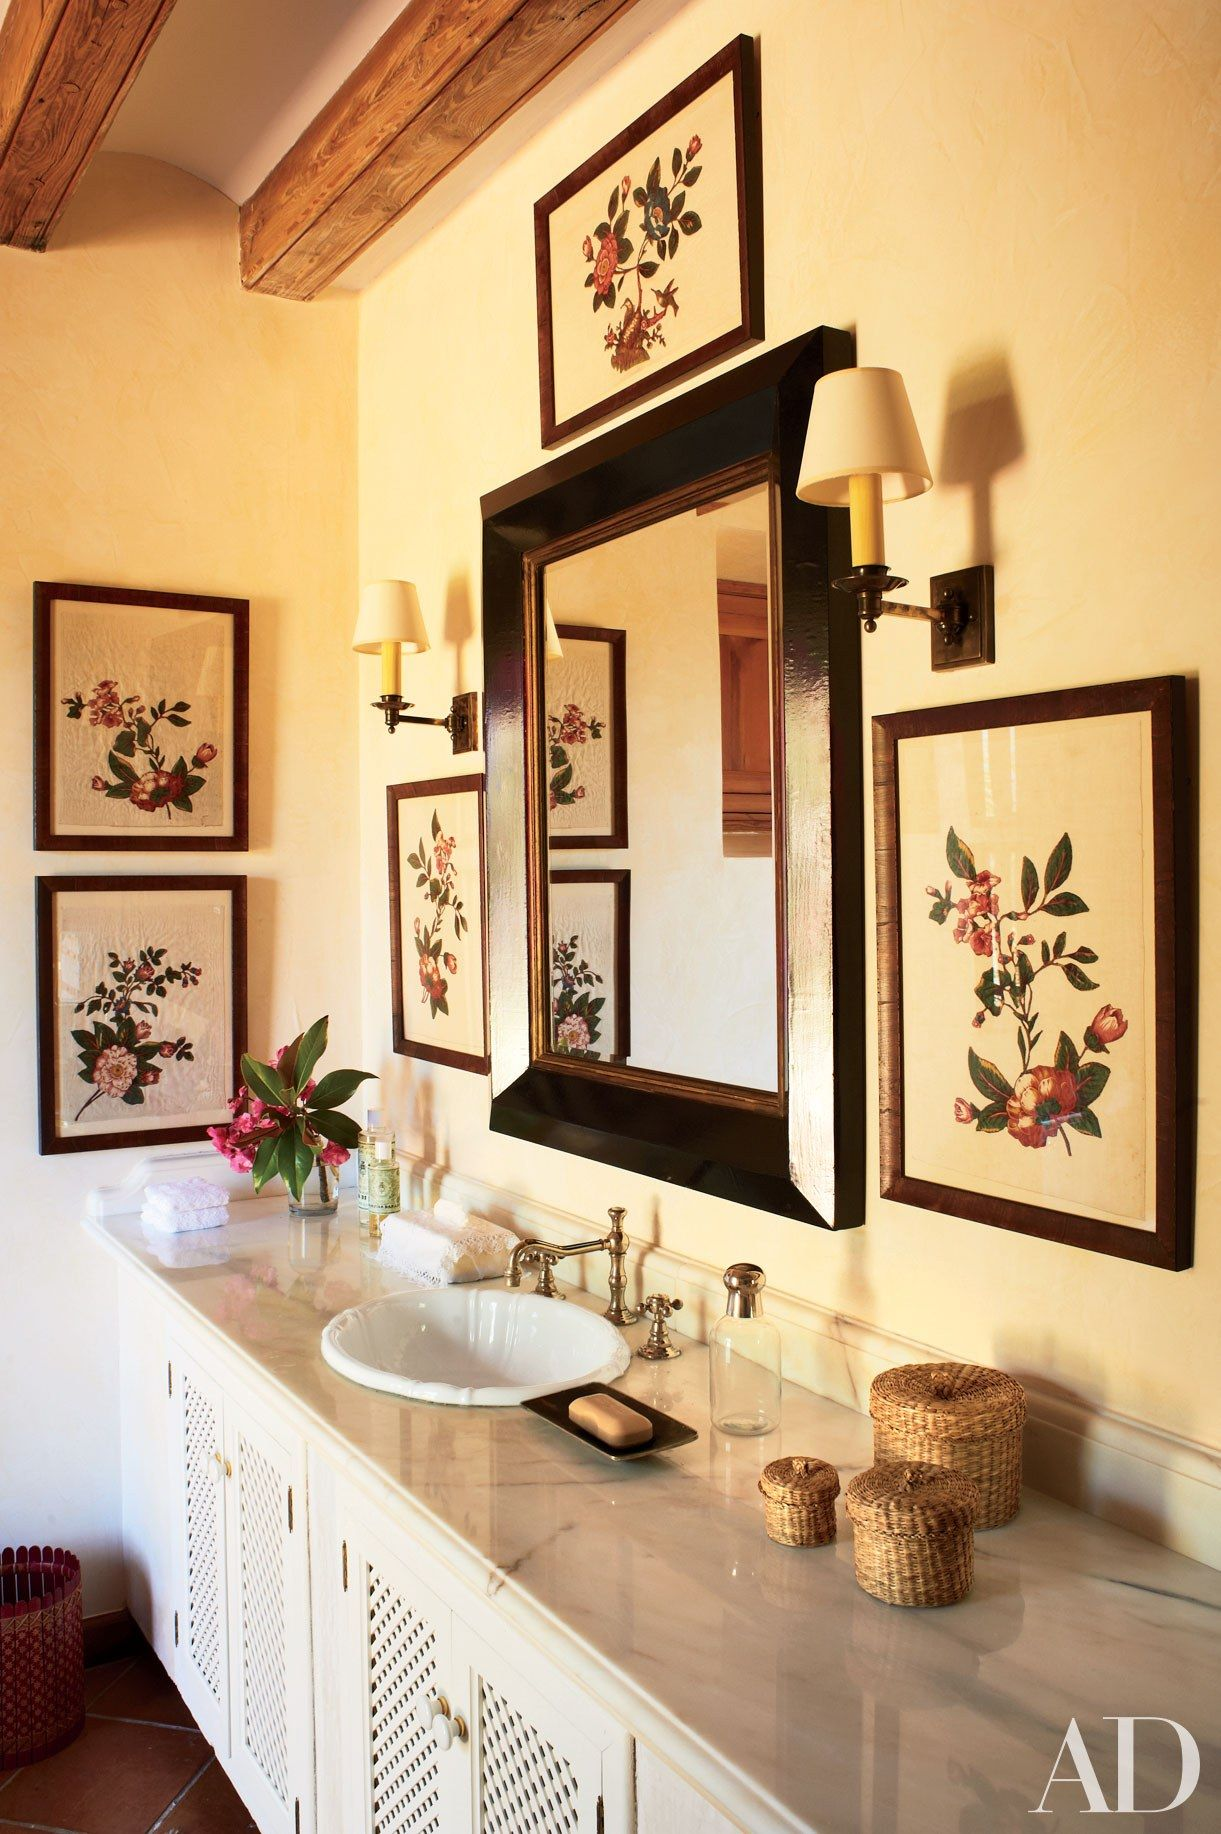 21 Guest Bathrooms That Will Impress Any Visitor | Architectural ...